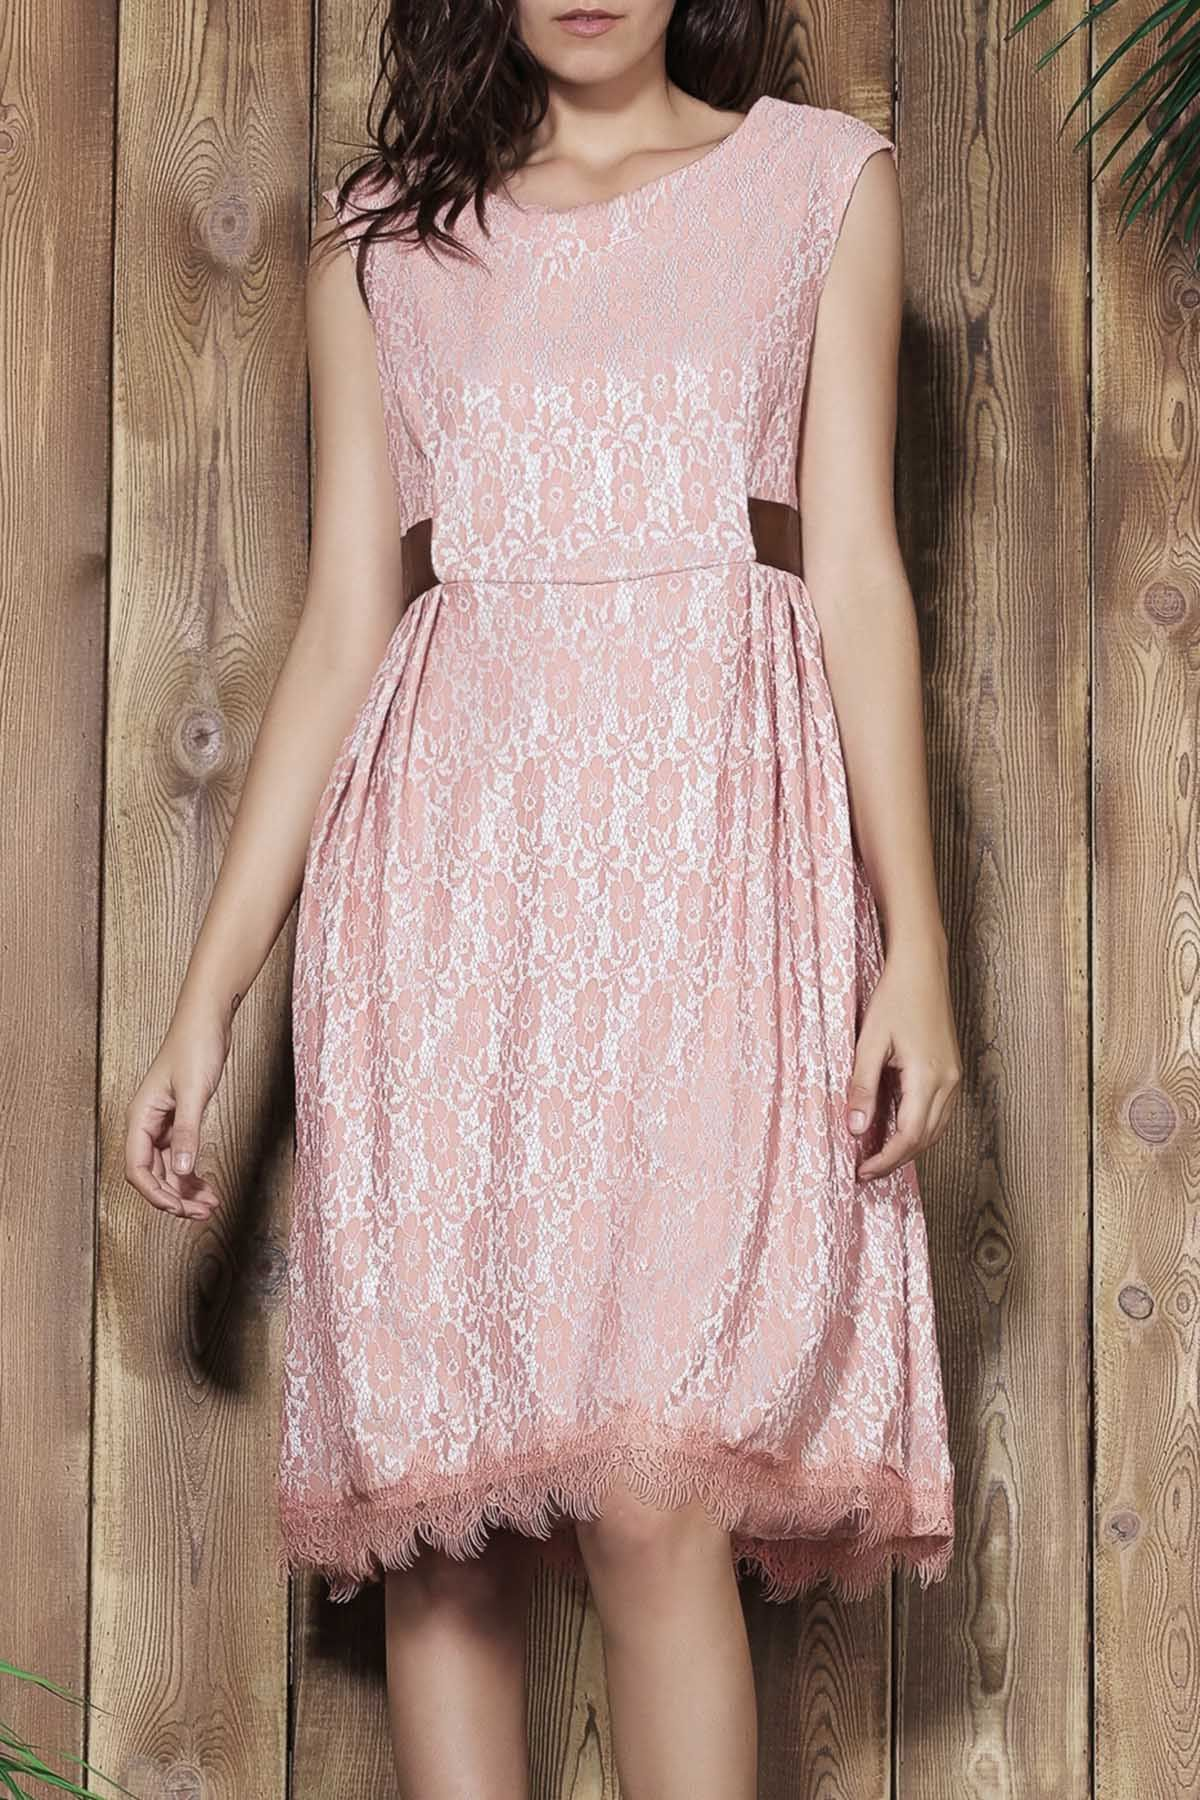 Vintage style scoop neck sleeveless lace pink ball gown dress for